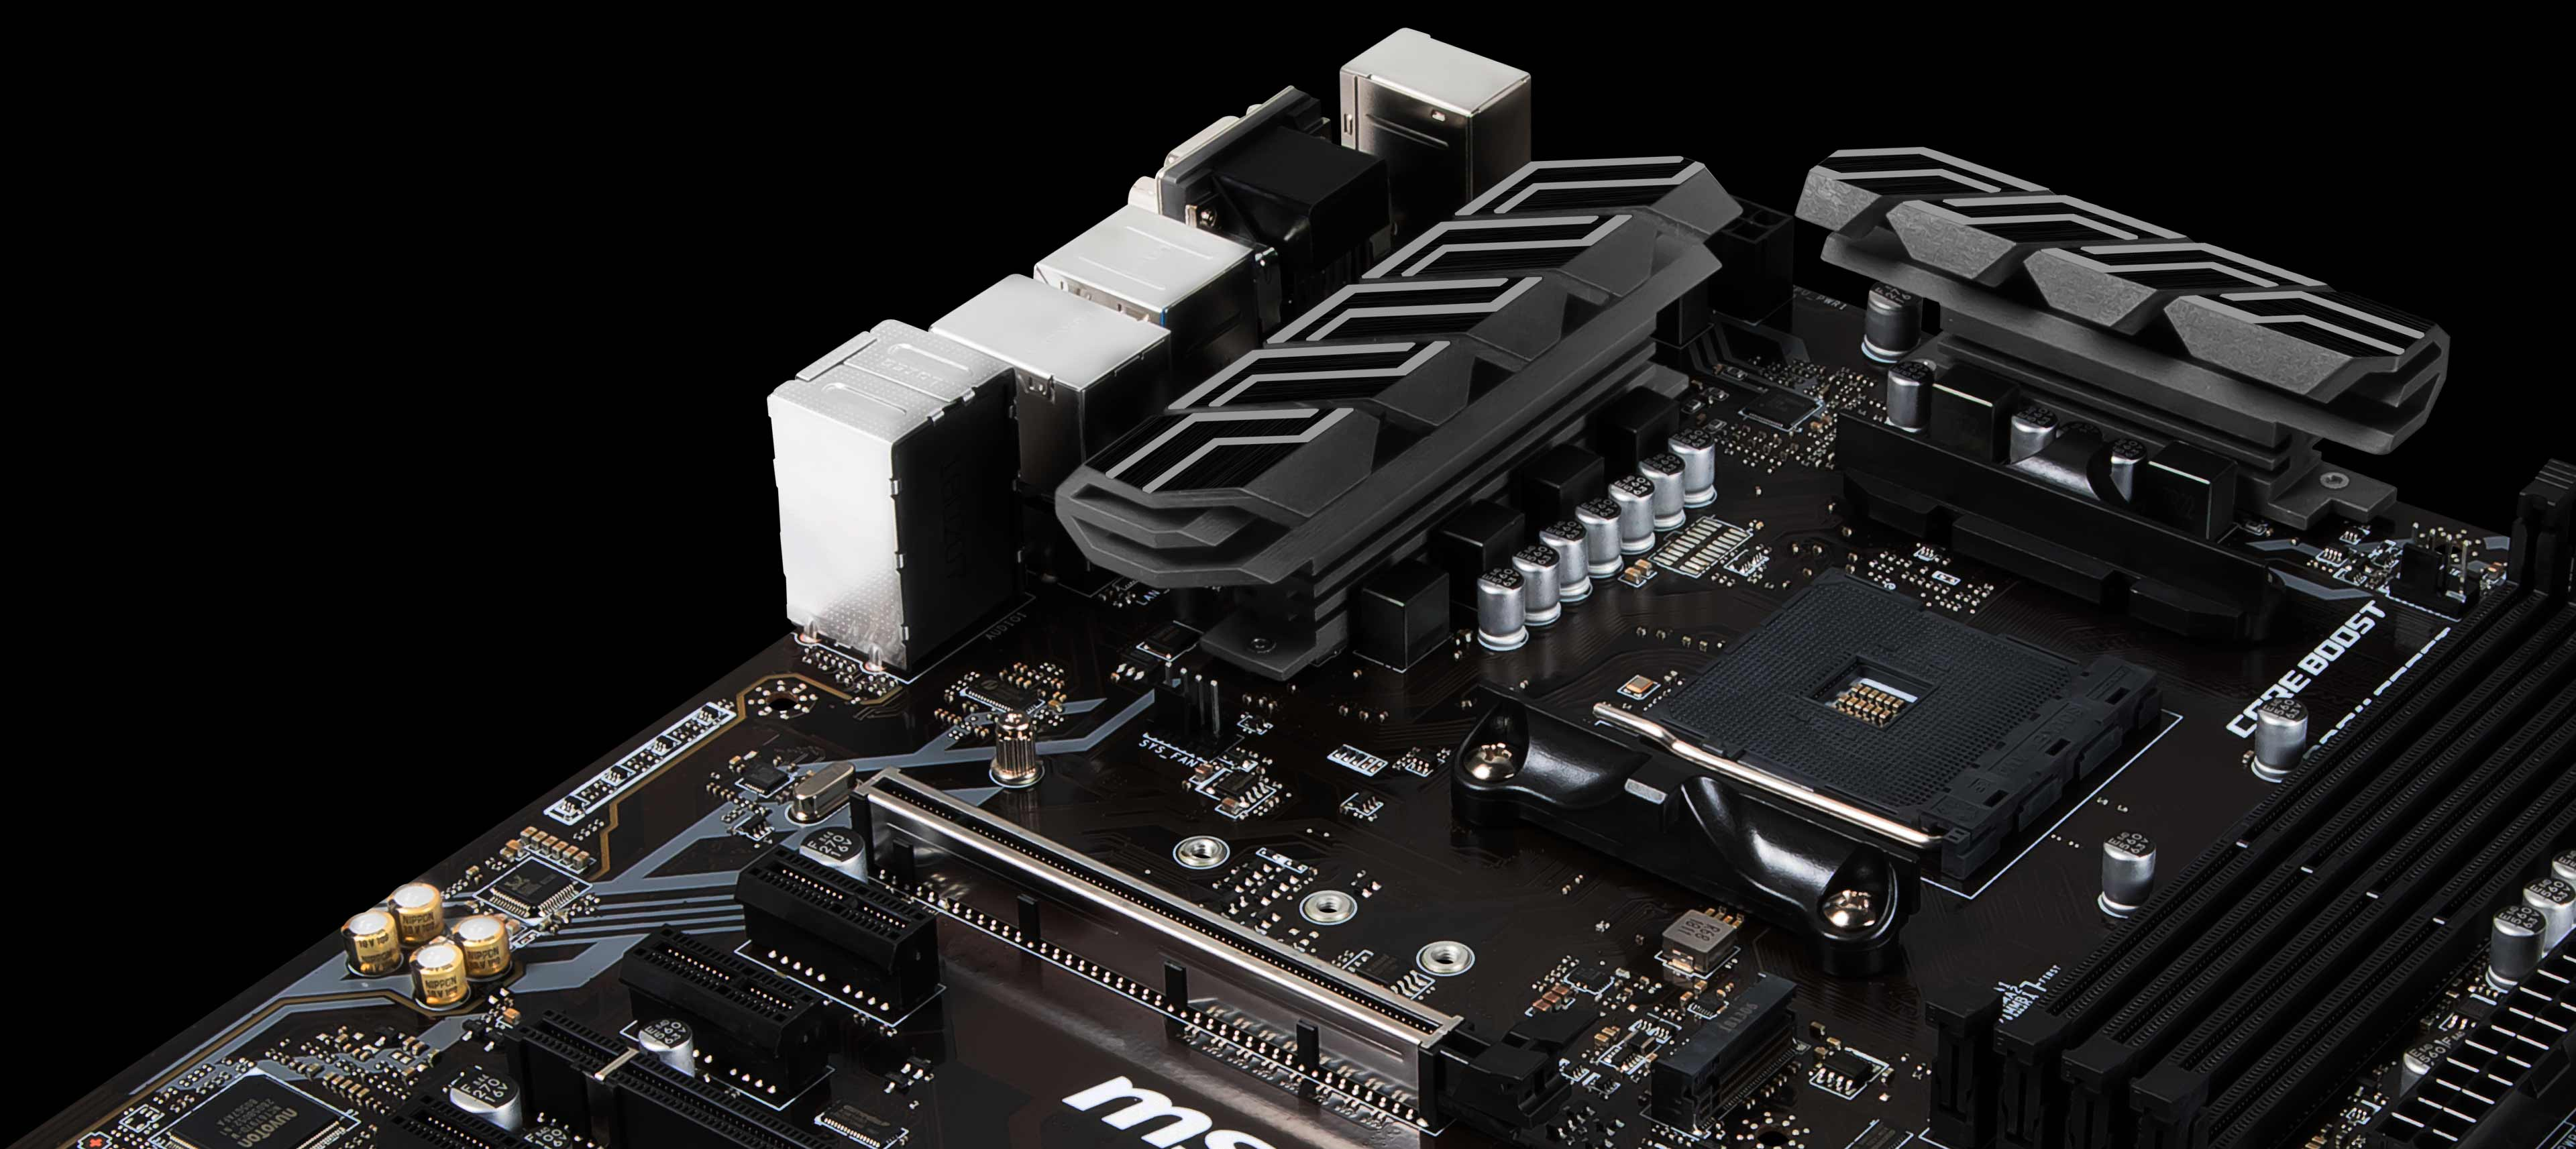 B450-A PRO | Motherboard - The world leader in motherboard design